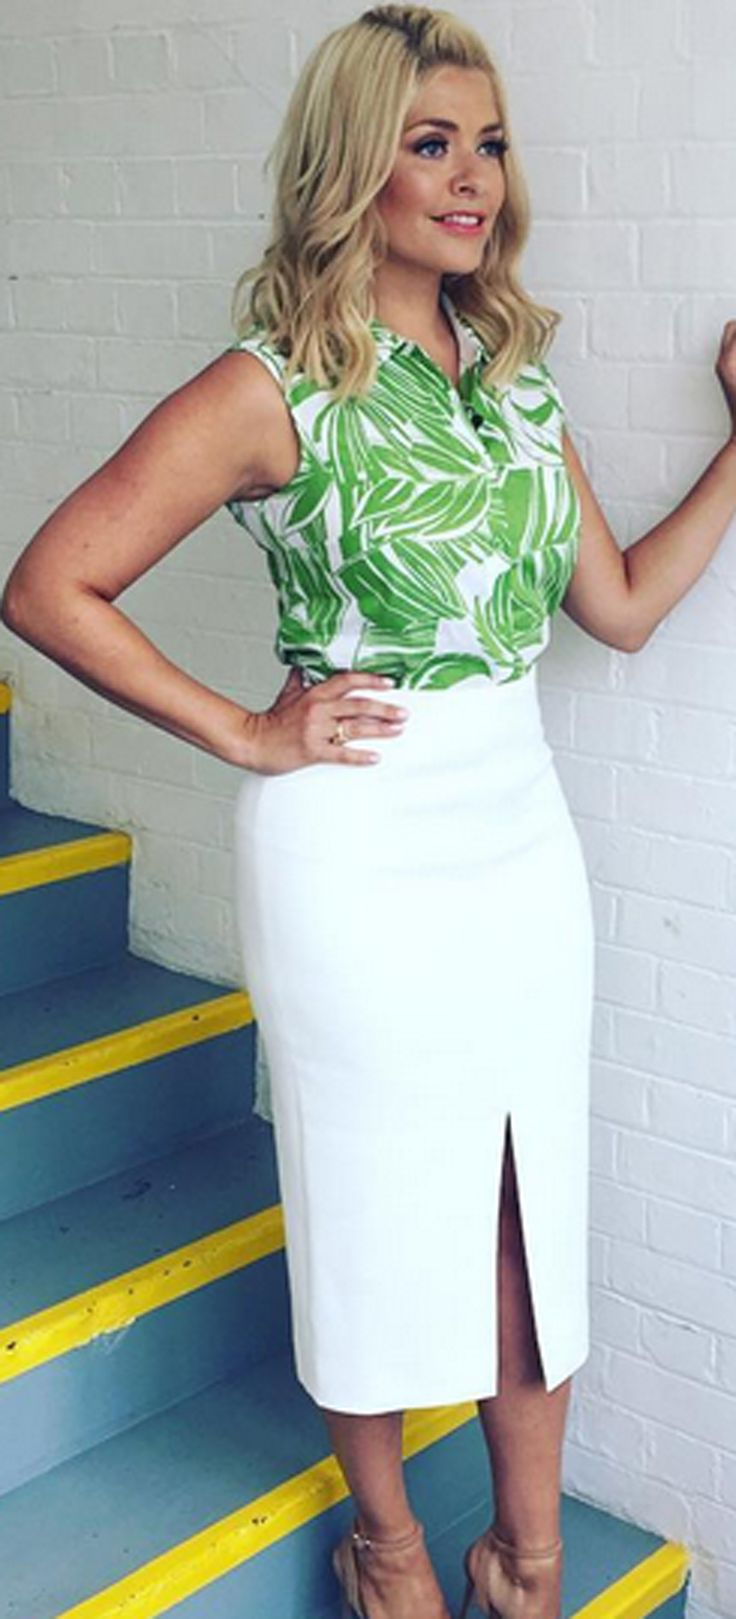 Why Holly Willoughby will *never* talk about her weight or fitness regime...